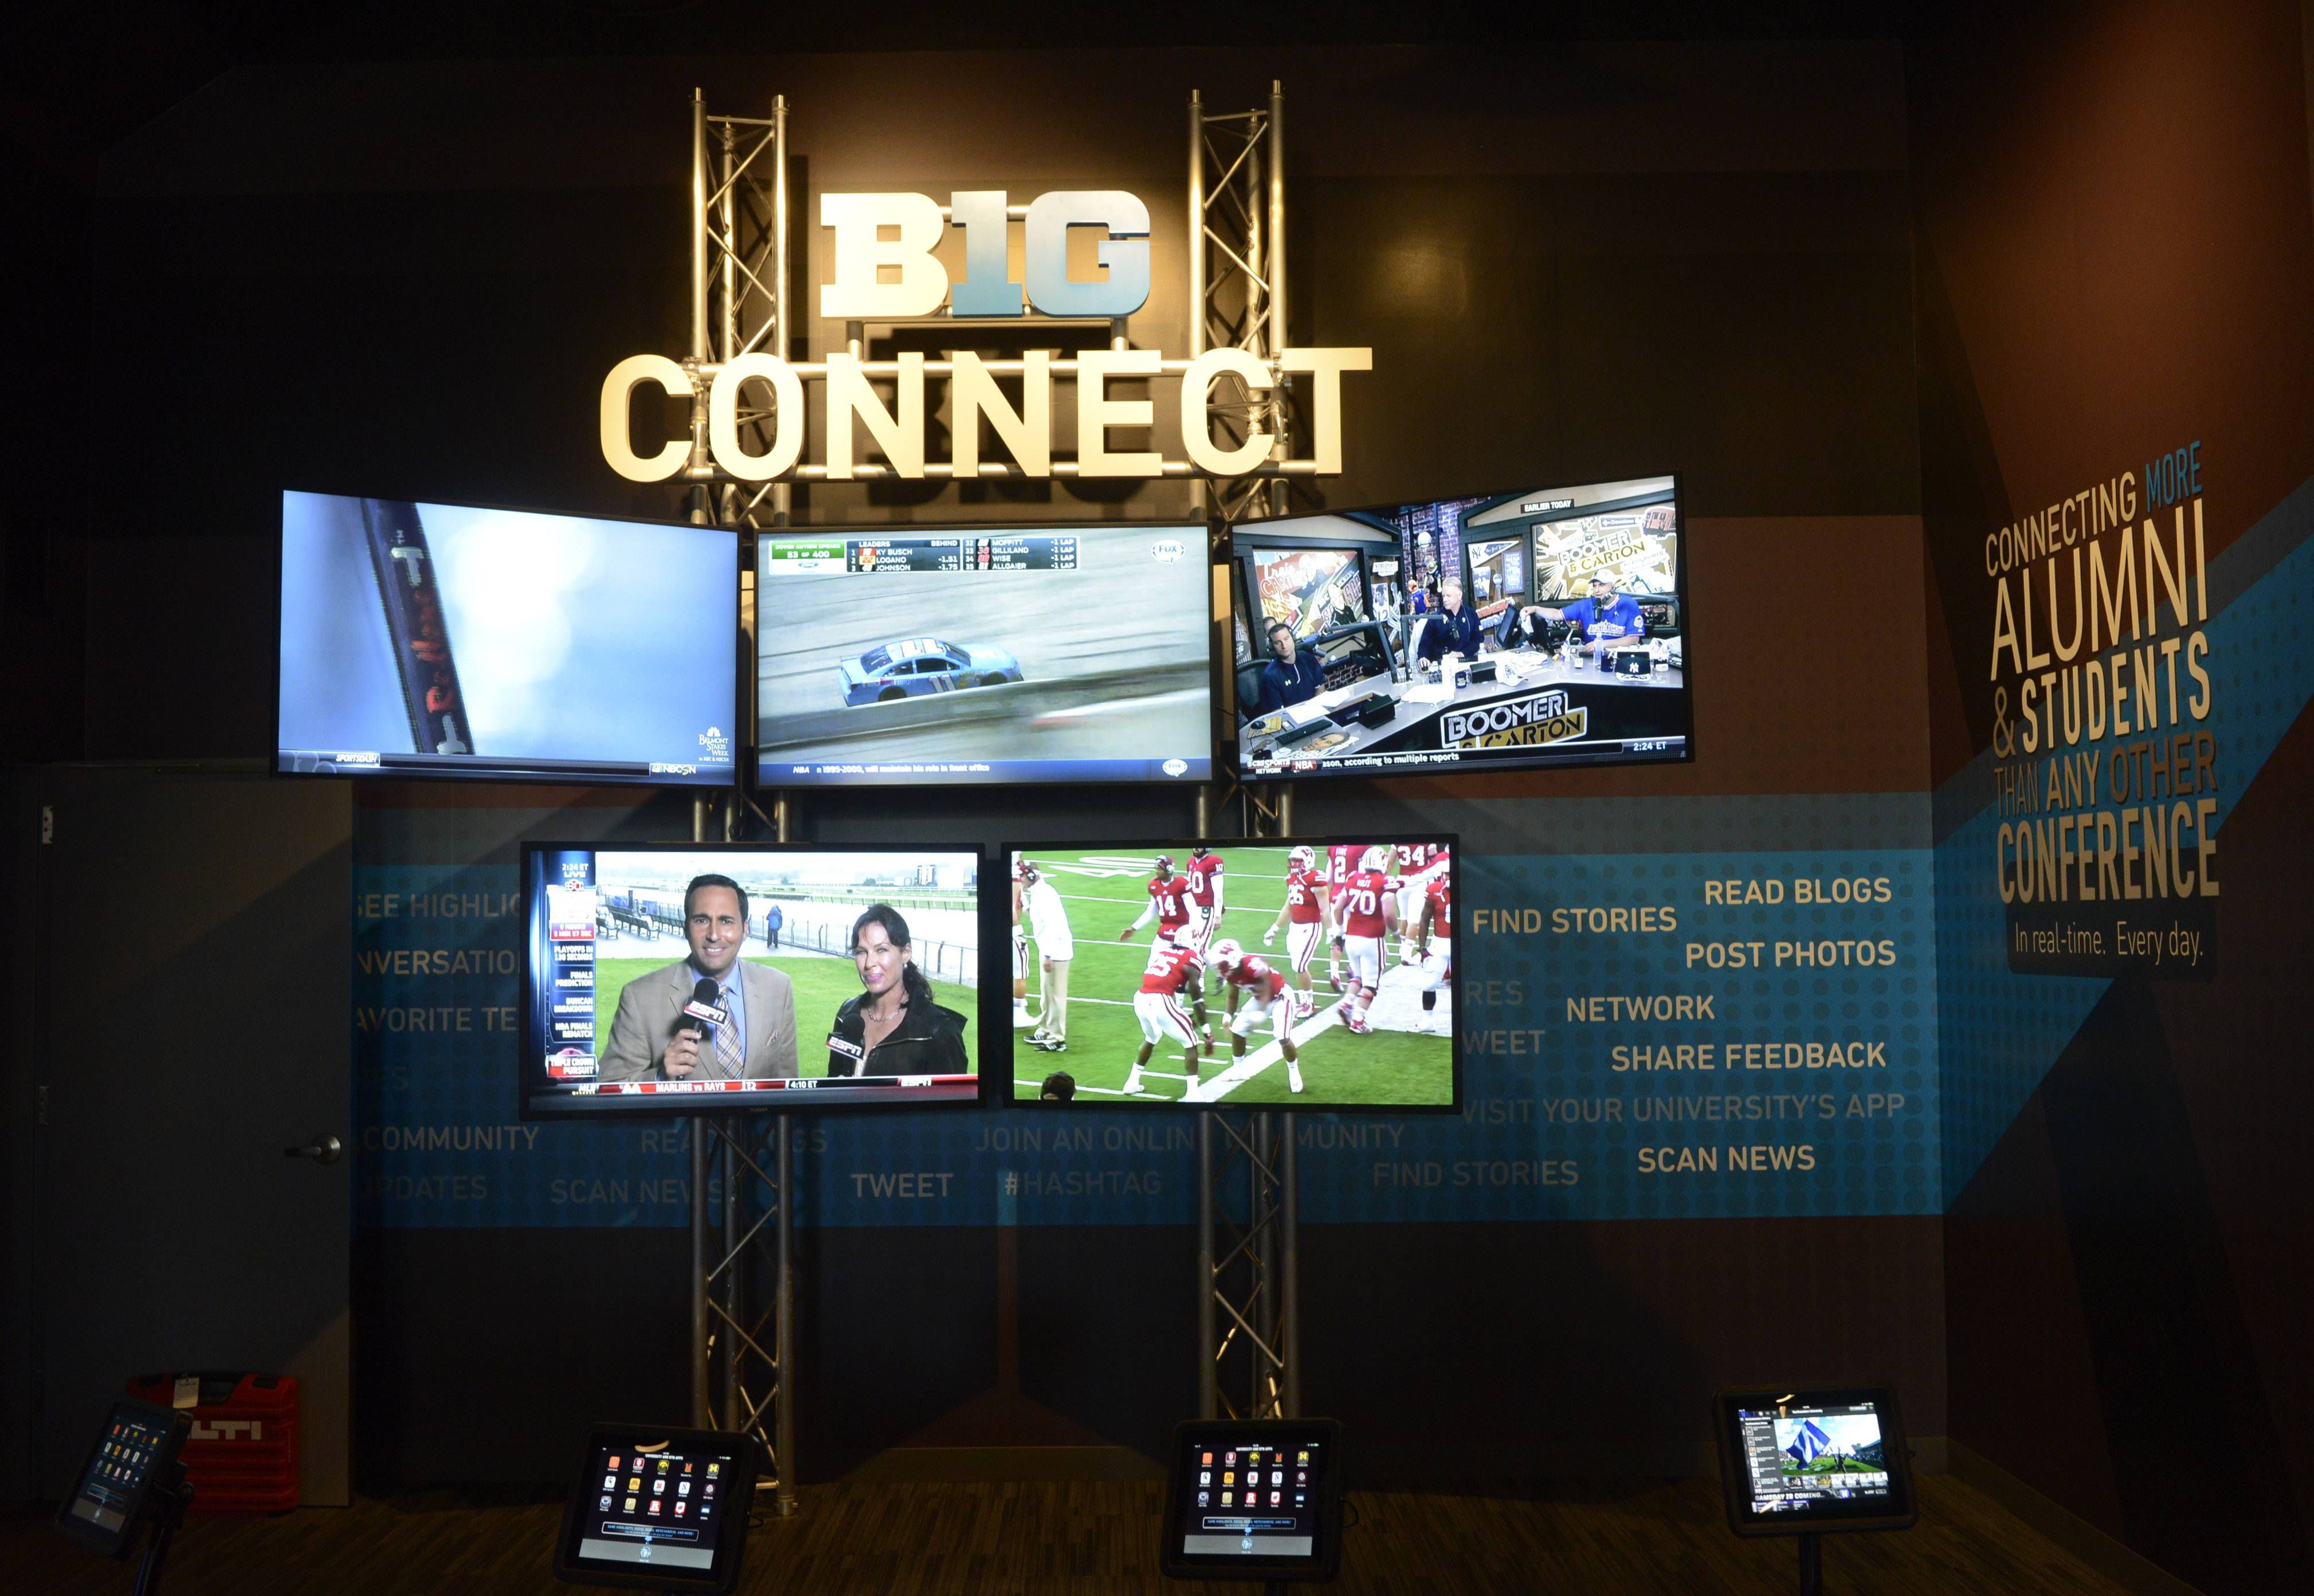 Big Ten Connect is one of the displays at the new interactive Big Ten Museum, which opens Saturday in Rosemont. Patrons can view live footage from Big Ten television partners on five screens and interact with the conference's and schools' social media pages.